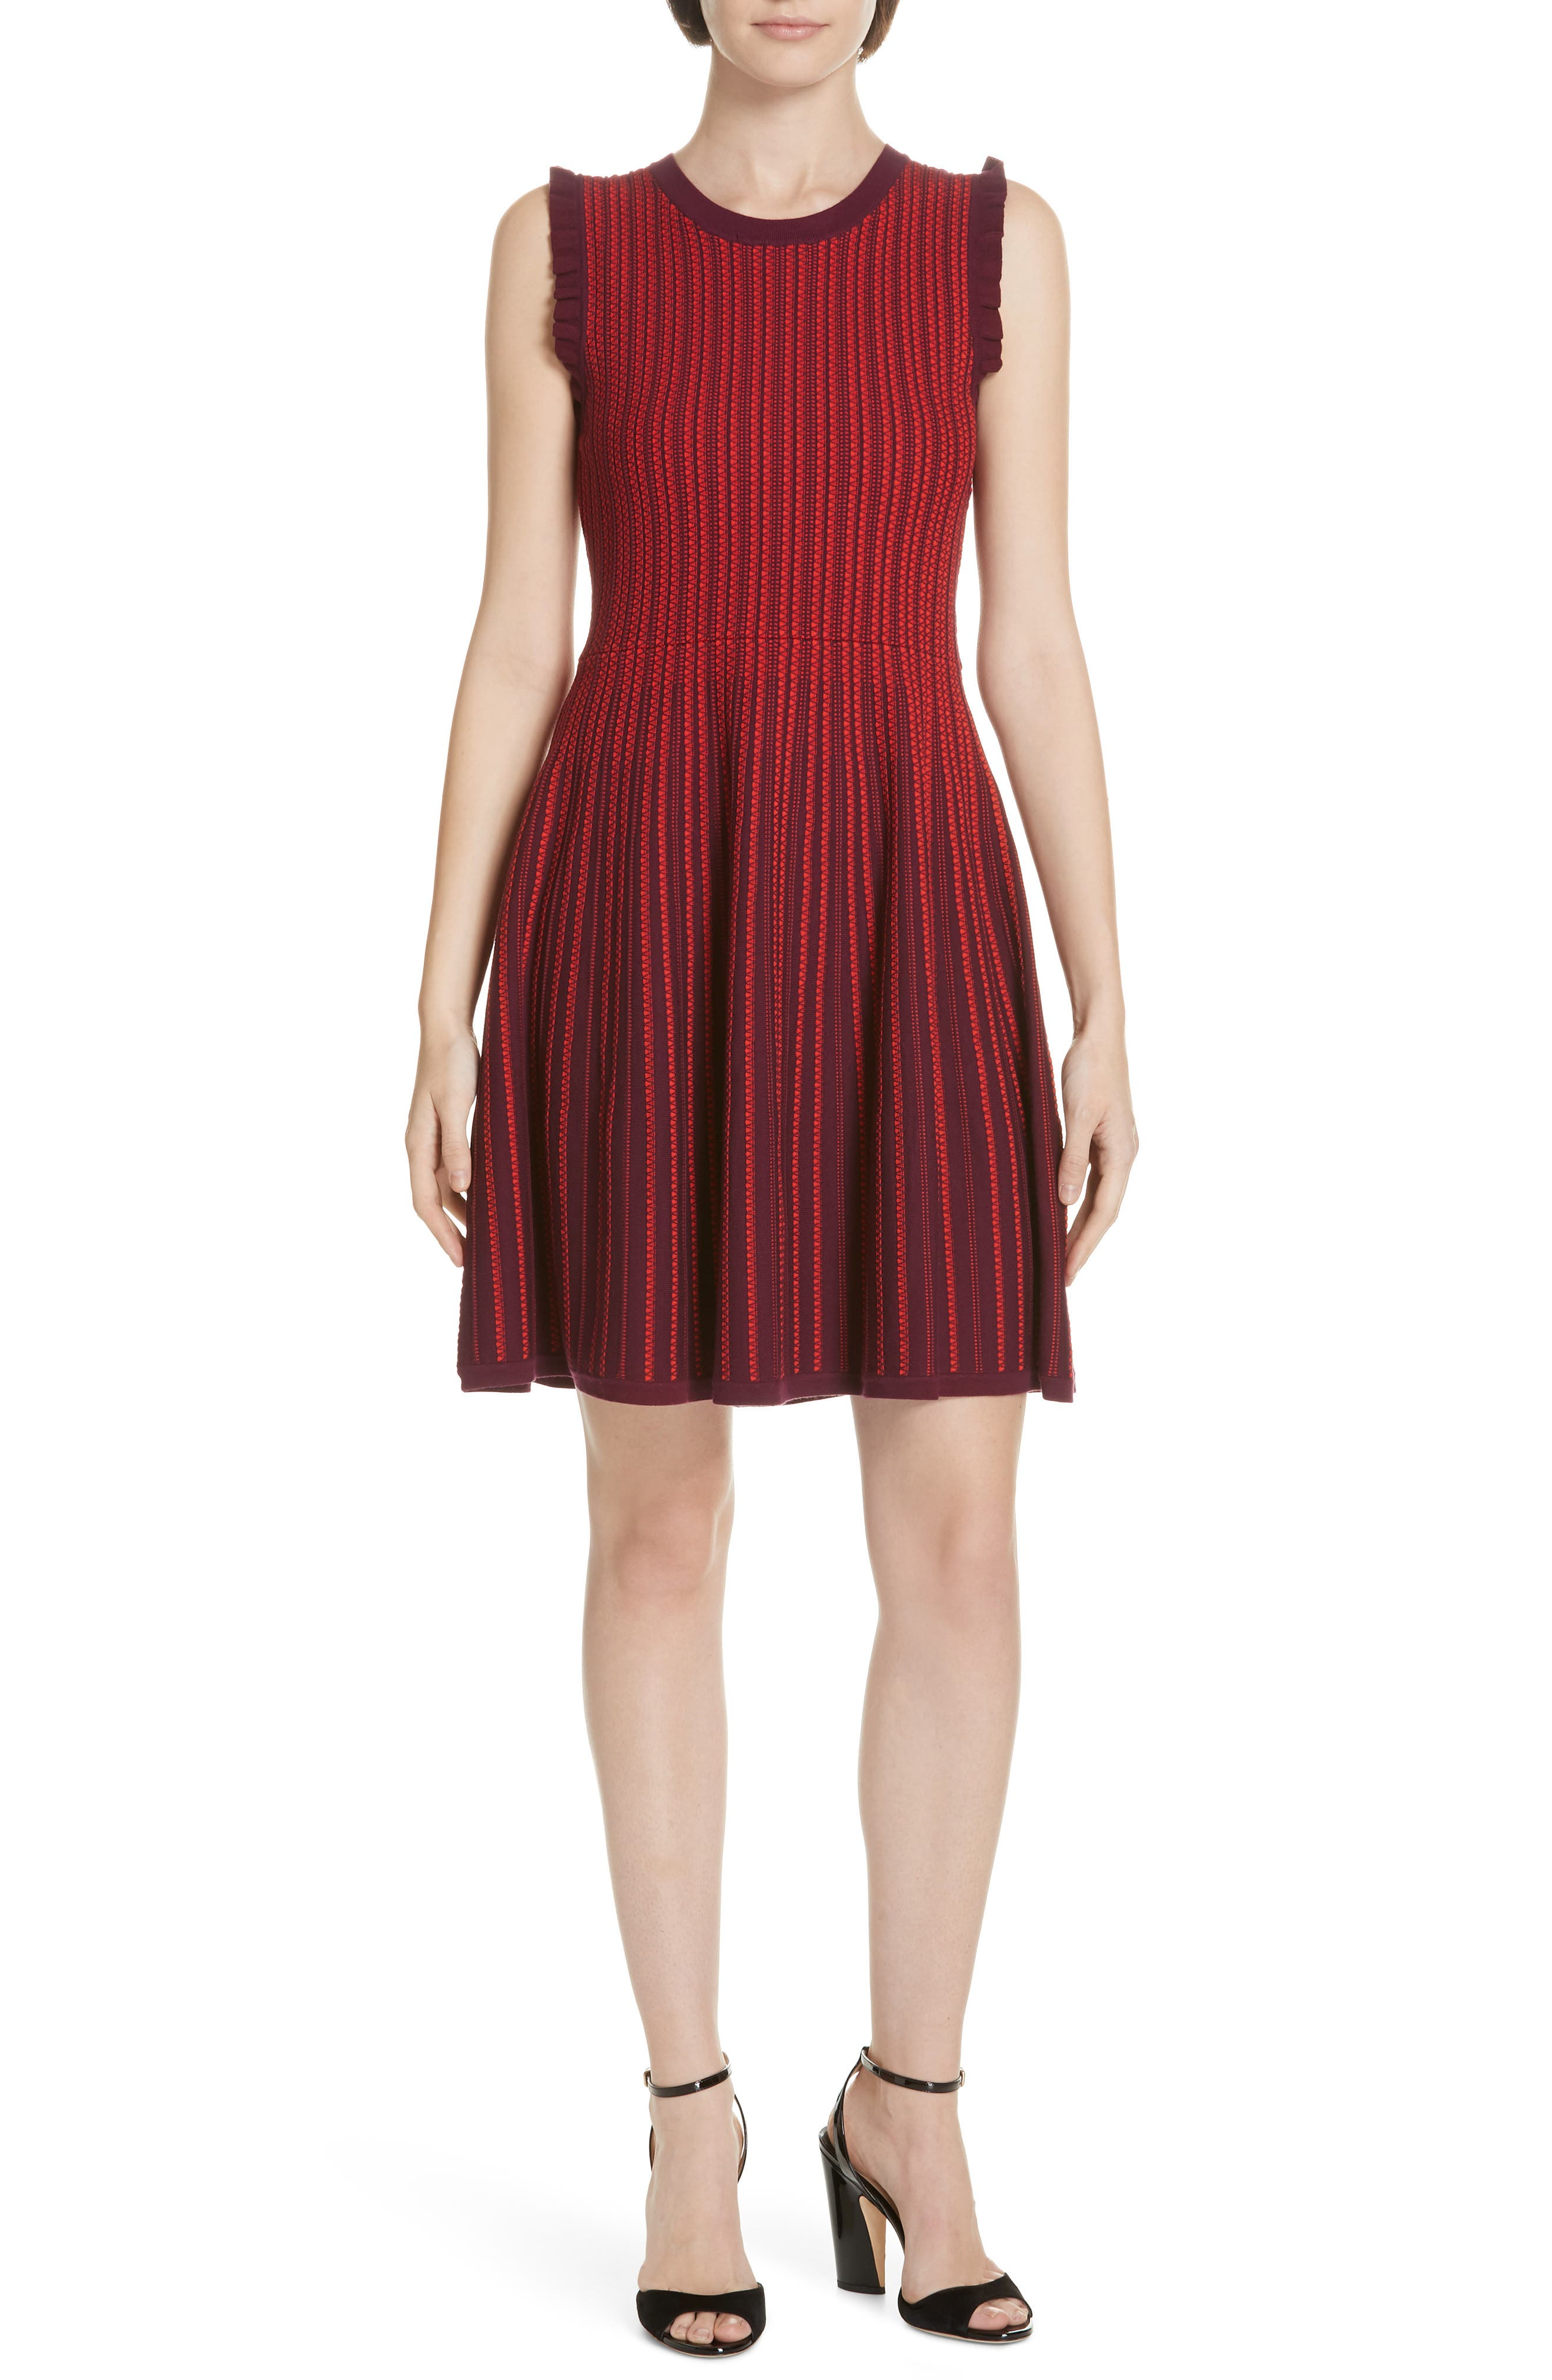 Kate Spade New York Knit Fit & Flare Dress, Red